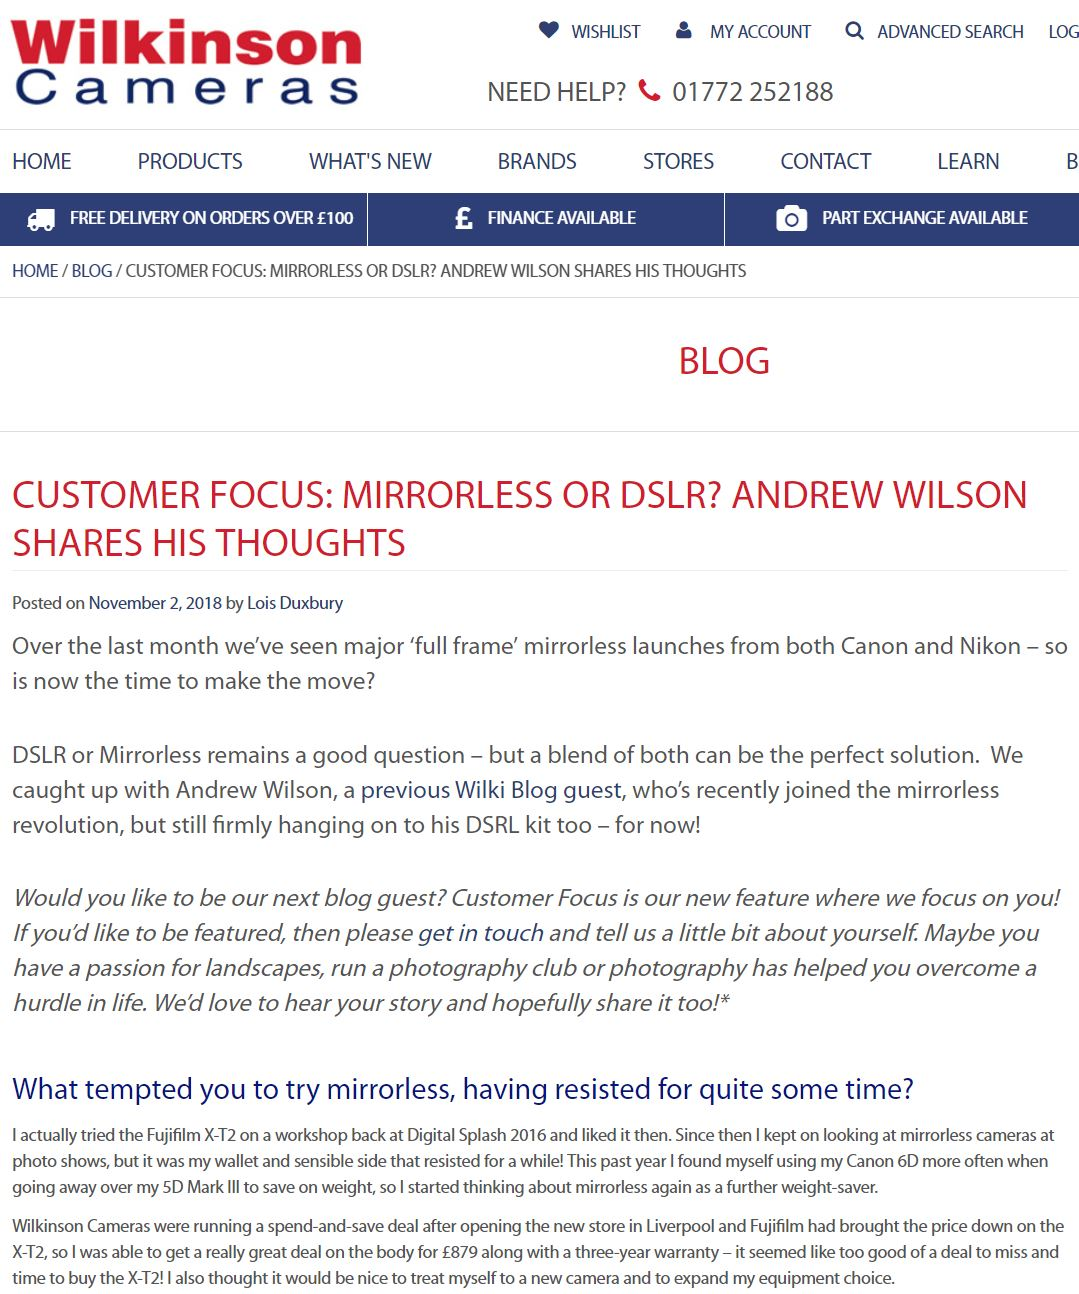 My second guest blog for Wilkinson Cameras, this time about mirrorless vs DSLR cameras.